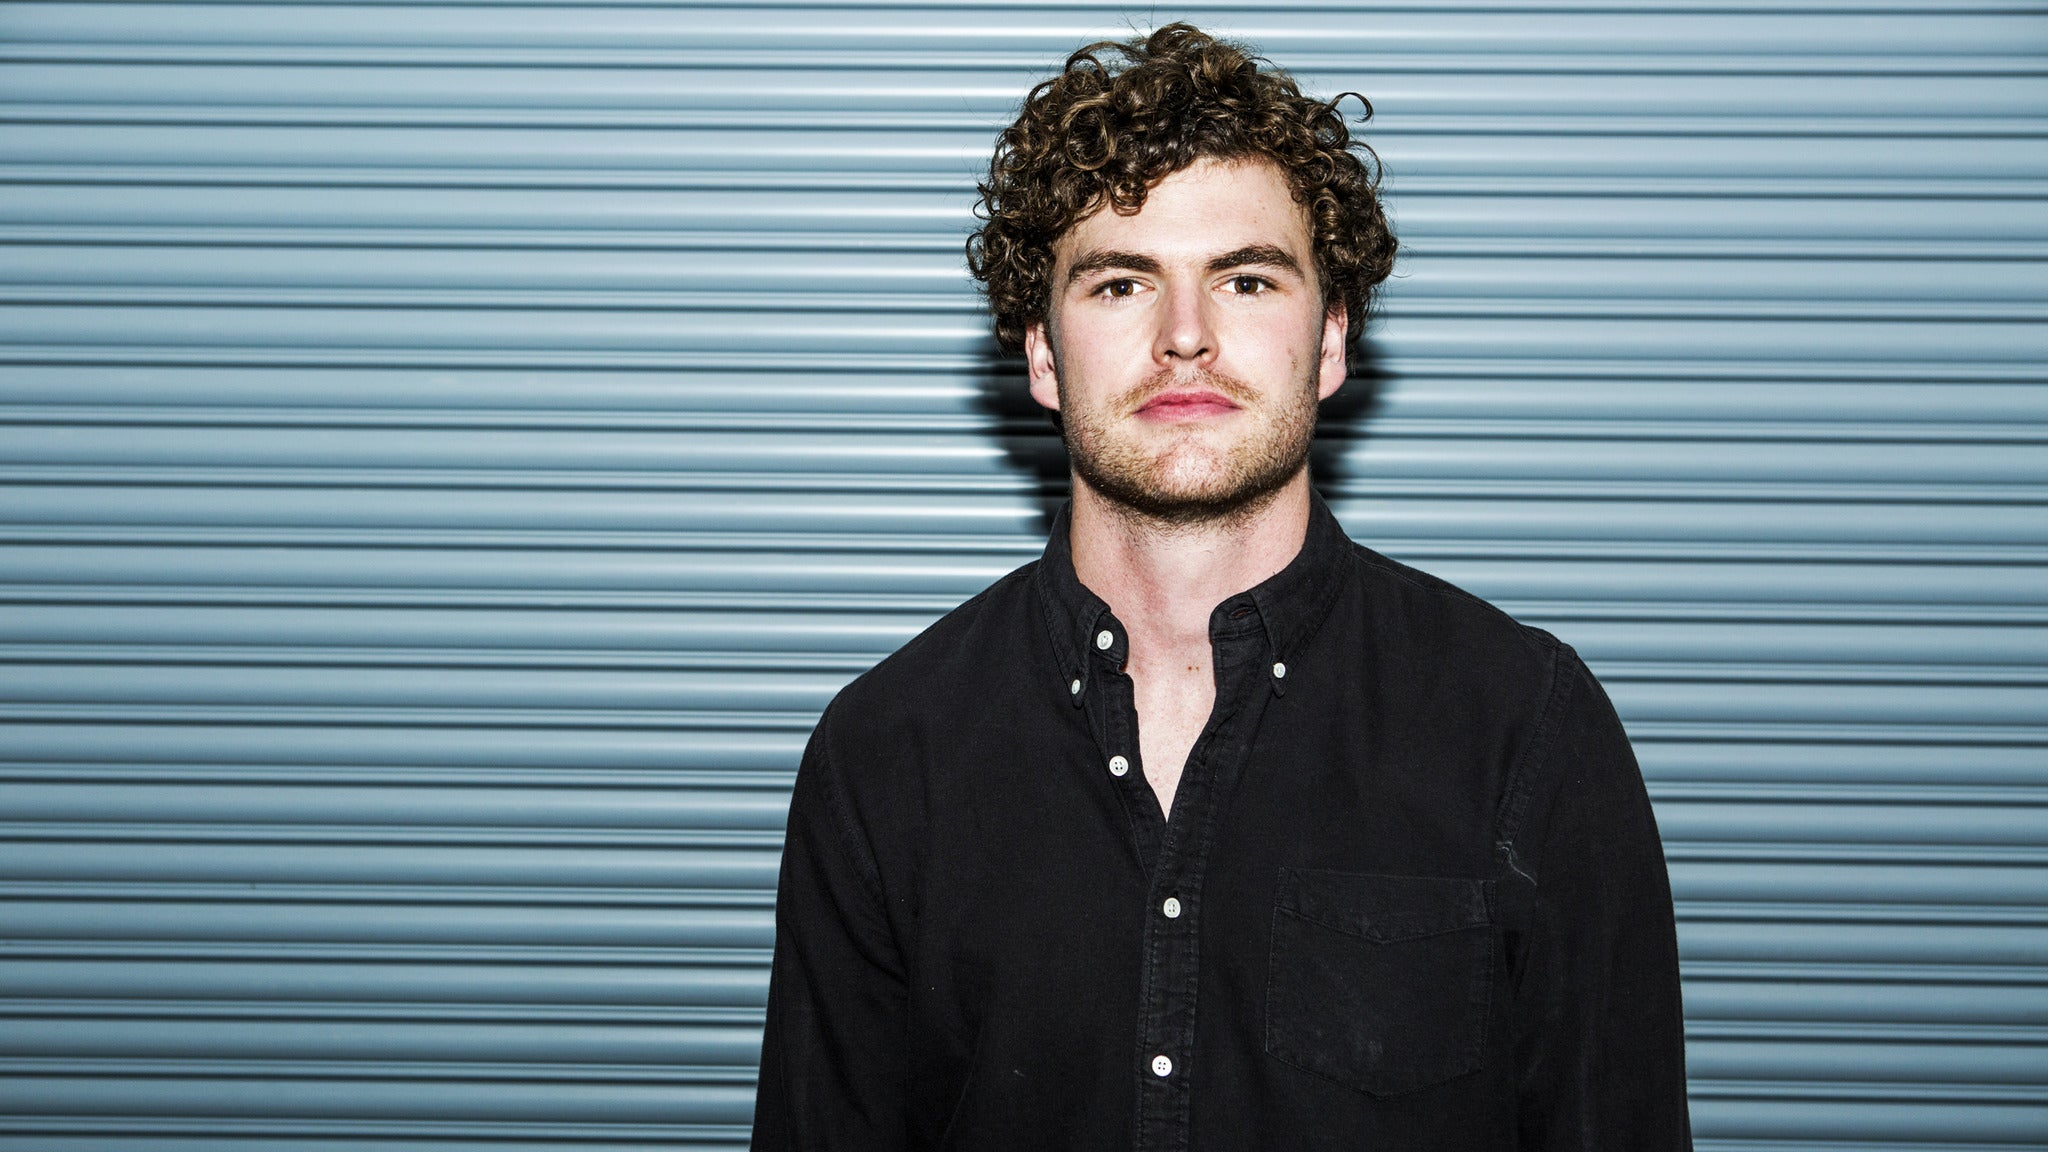 Official Lollapalooza Aftershow with Vance Joy